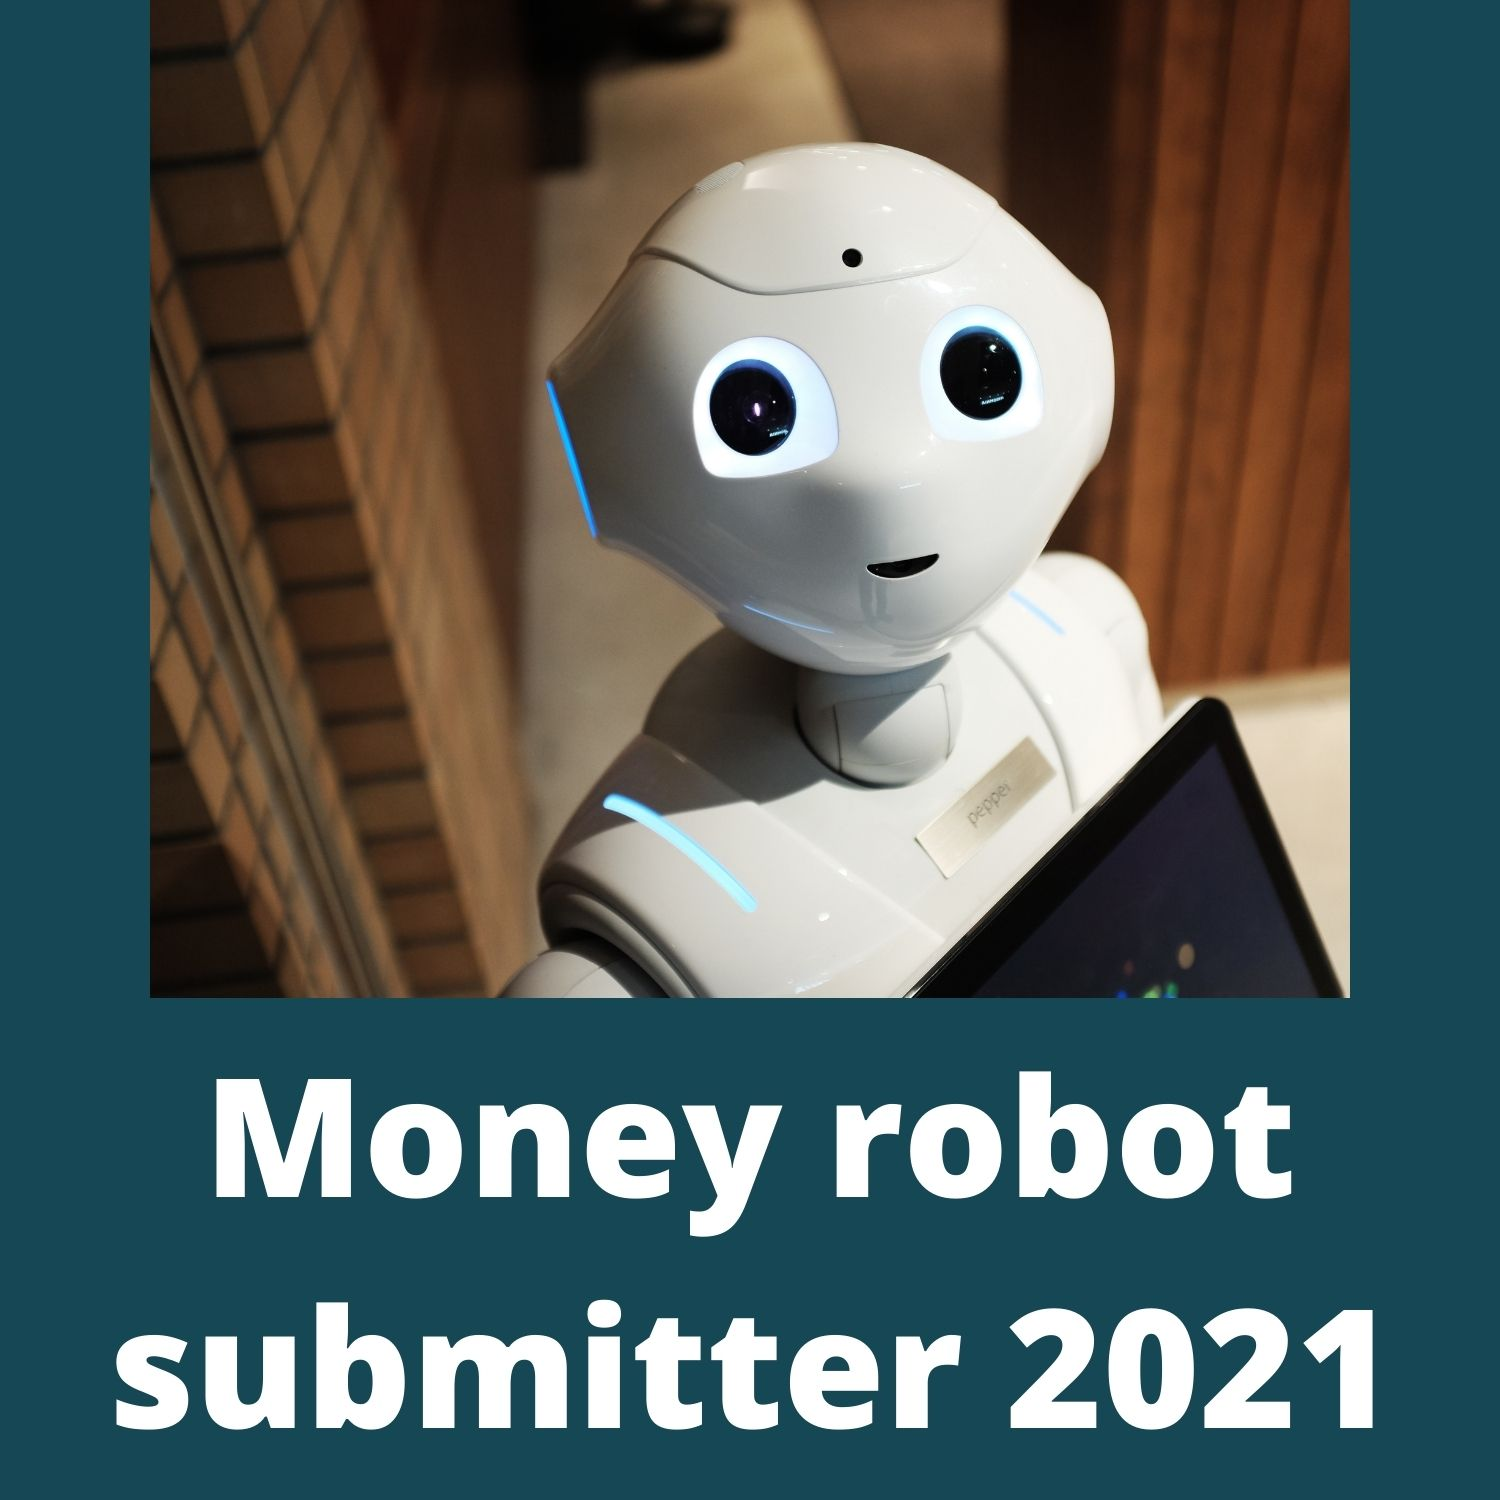 Money robot submitter 2021